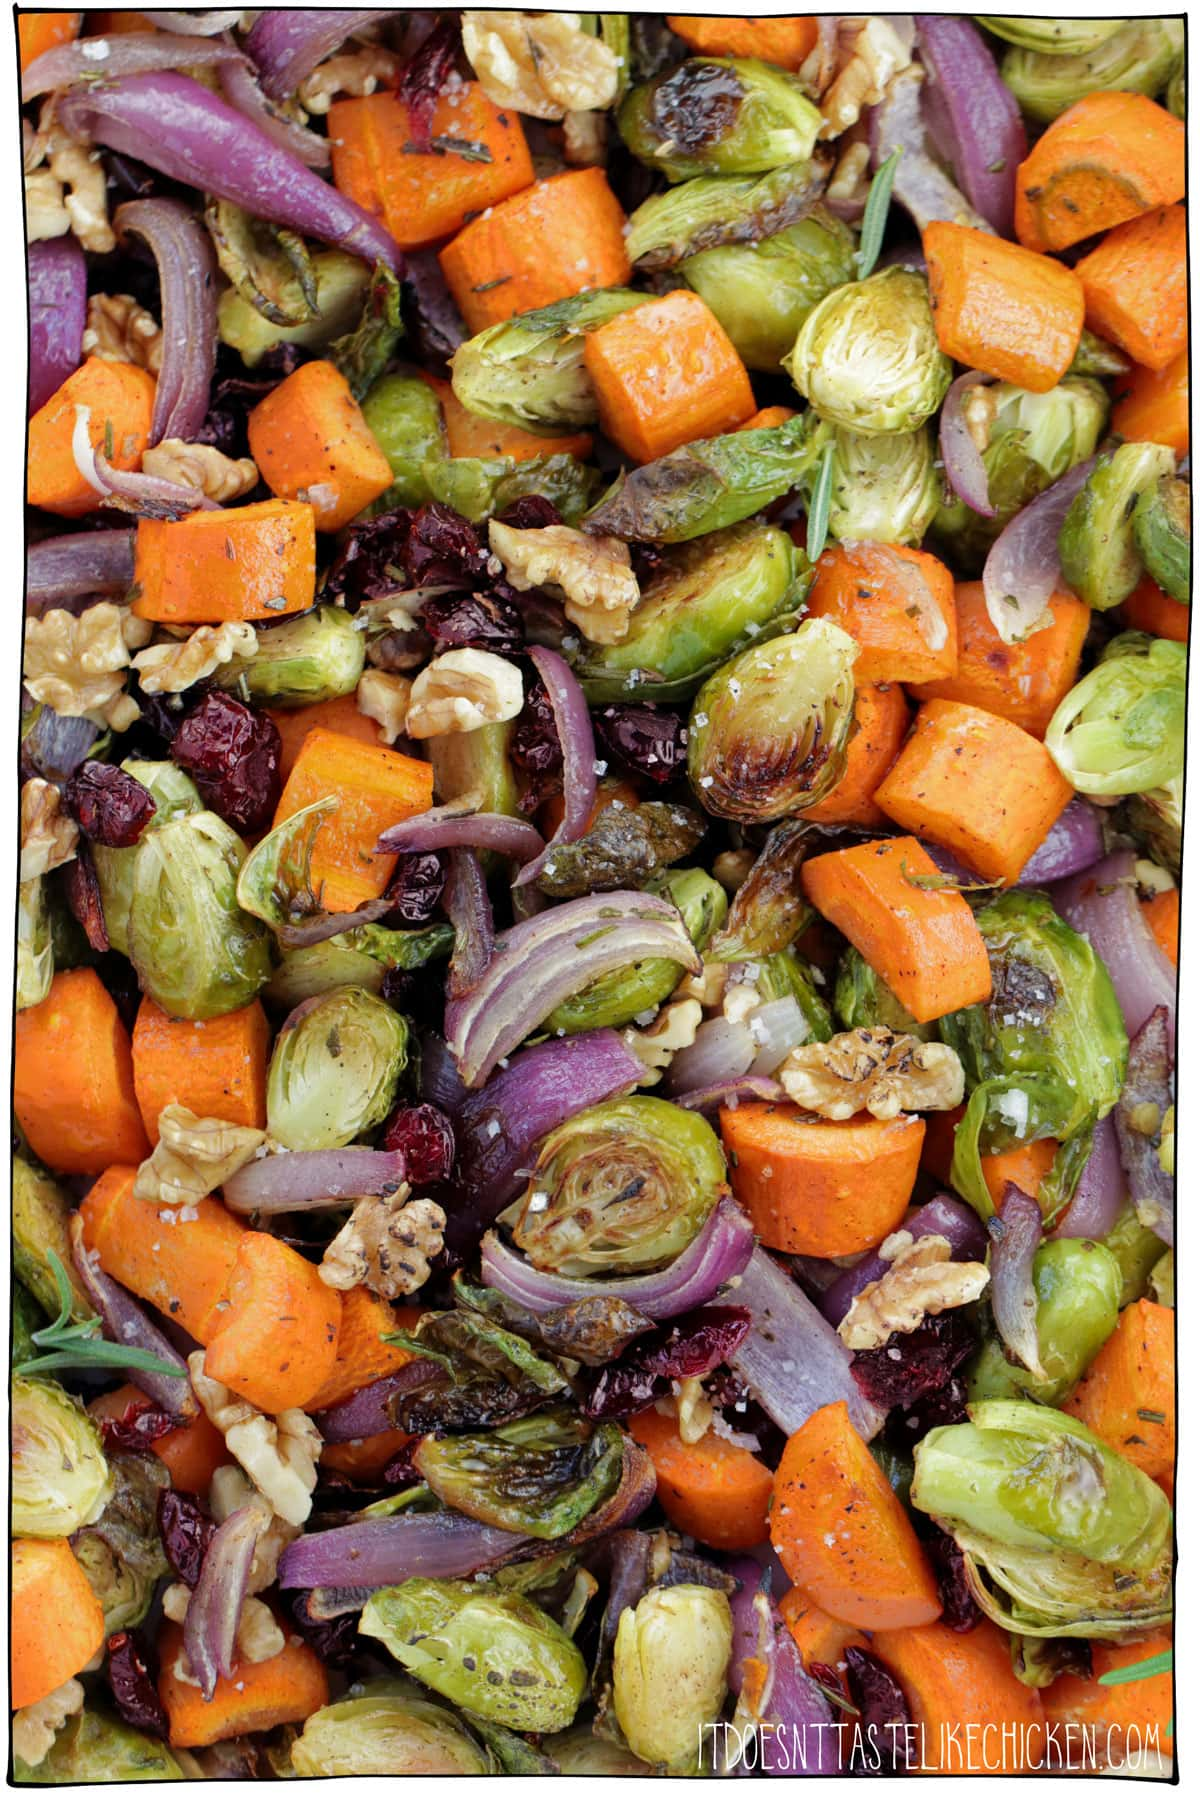 The Best Roasted Vegetables for Thanksgiving! Easy to make with crispy Brussels sprouts, hearty carrots, sweet red onion, crunchy toasted walnuts, sweet cranberries, and just a tiny touch of cinnamon. Now I know that I advertised these vegetables as being the perfect Thanksgiving side (and they really are), but these veg are so scrumptious you might find yourself prepping them all winter long. #itdoesnttastelikechicken #veganrecipes #thanksgiving